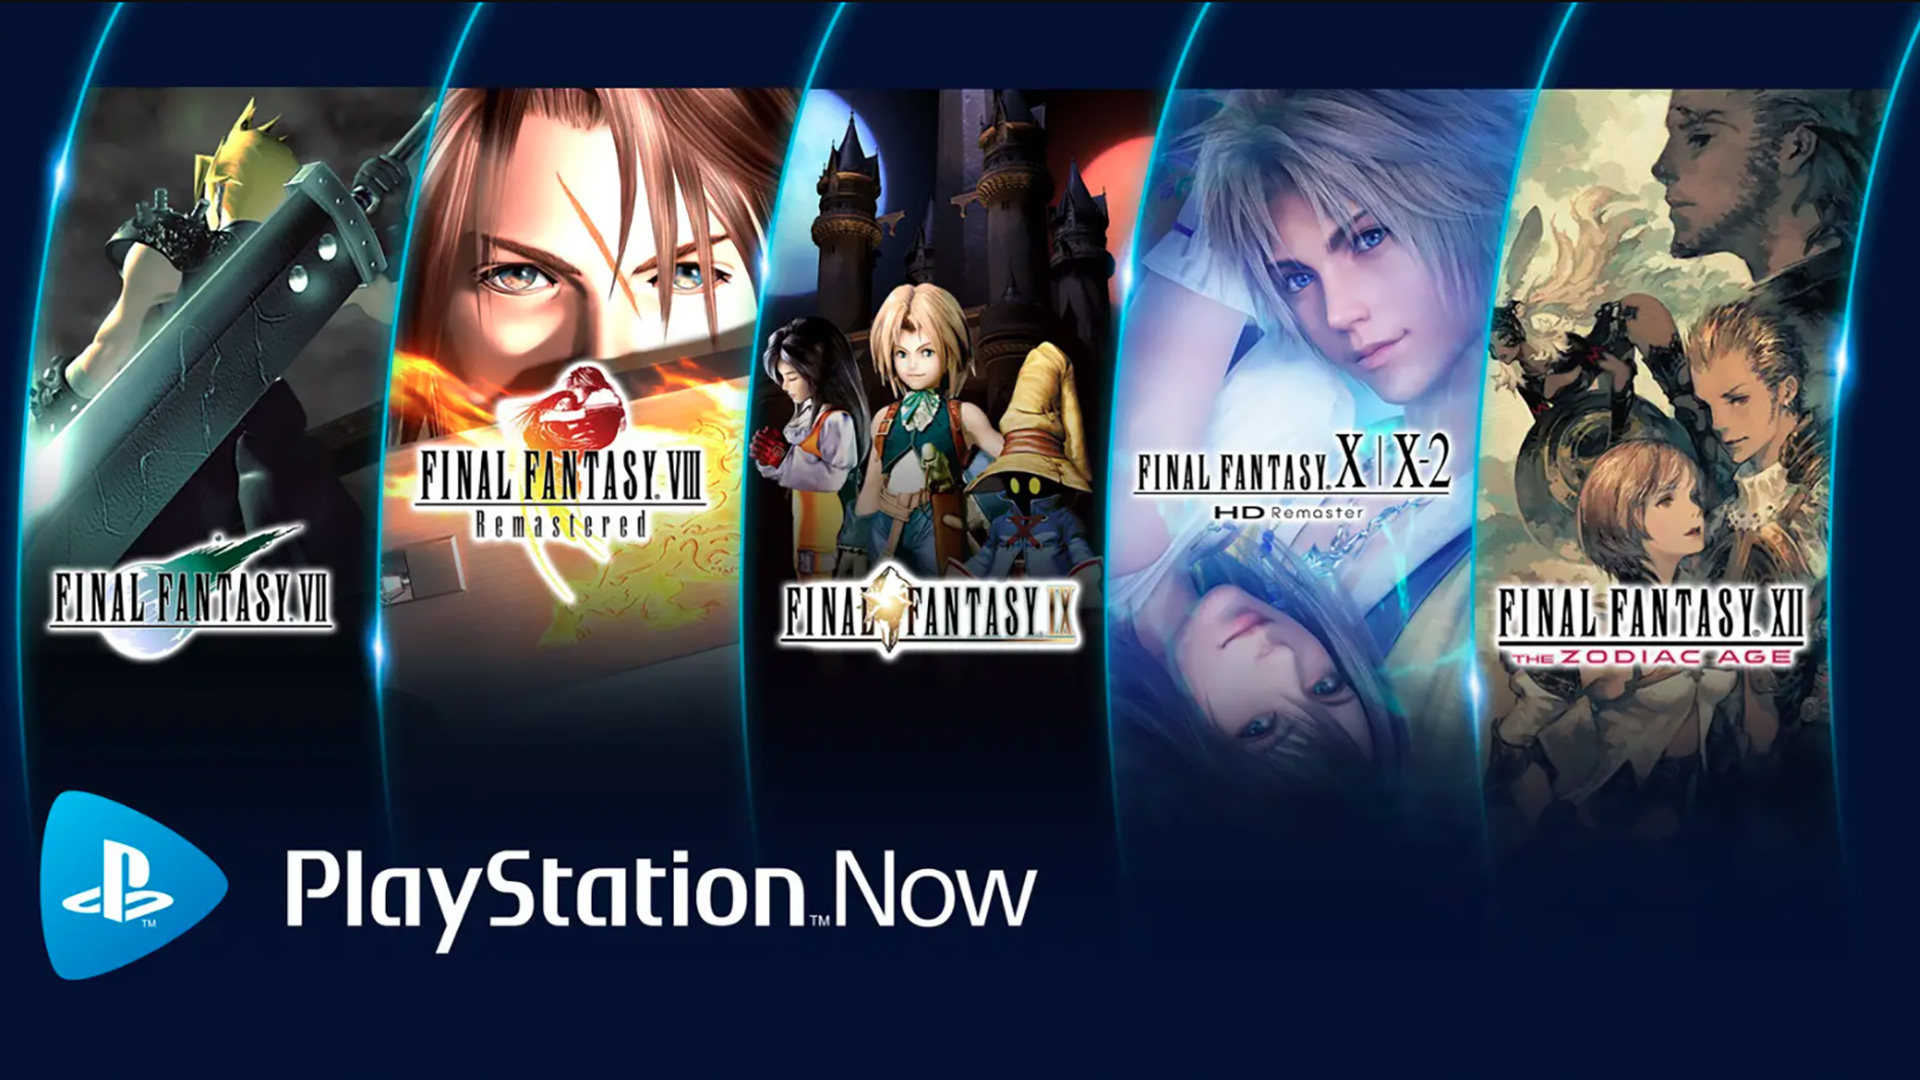 PlayStation Now Gets 5 New Final Fantasy Games